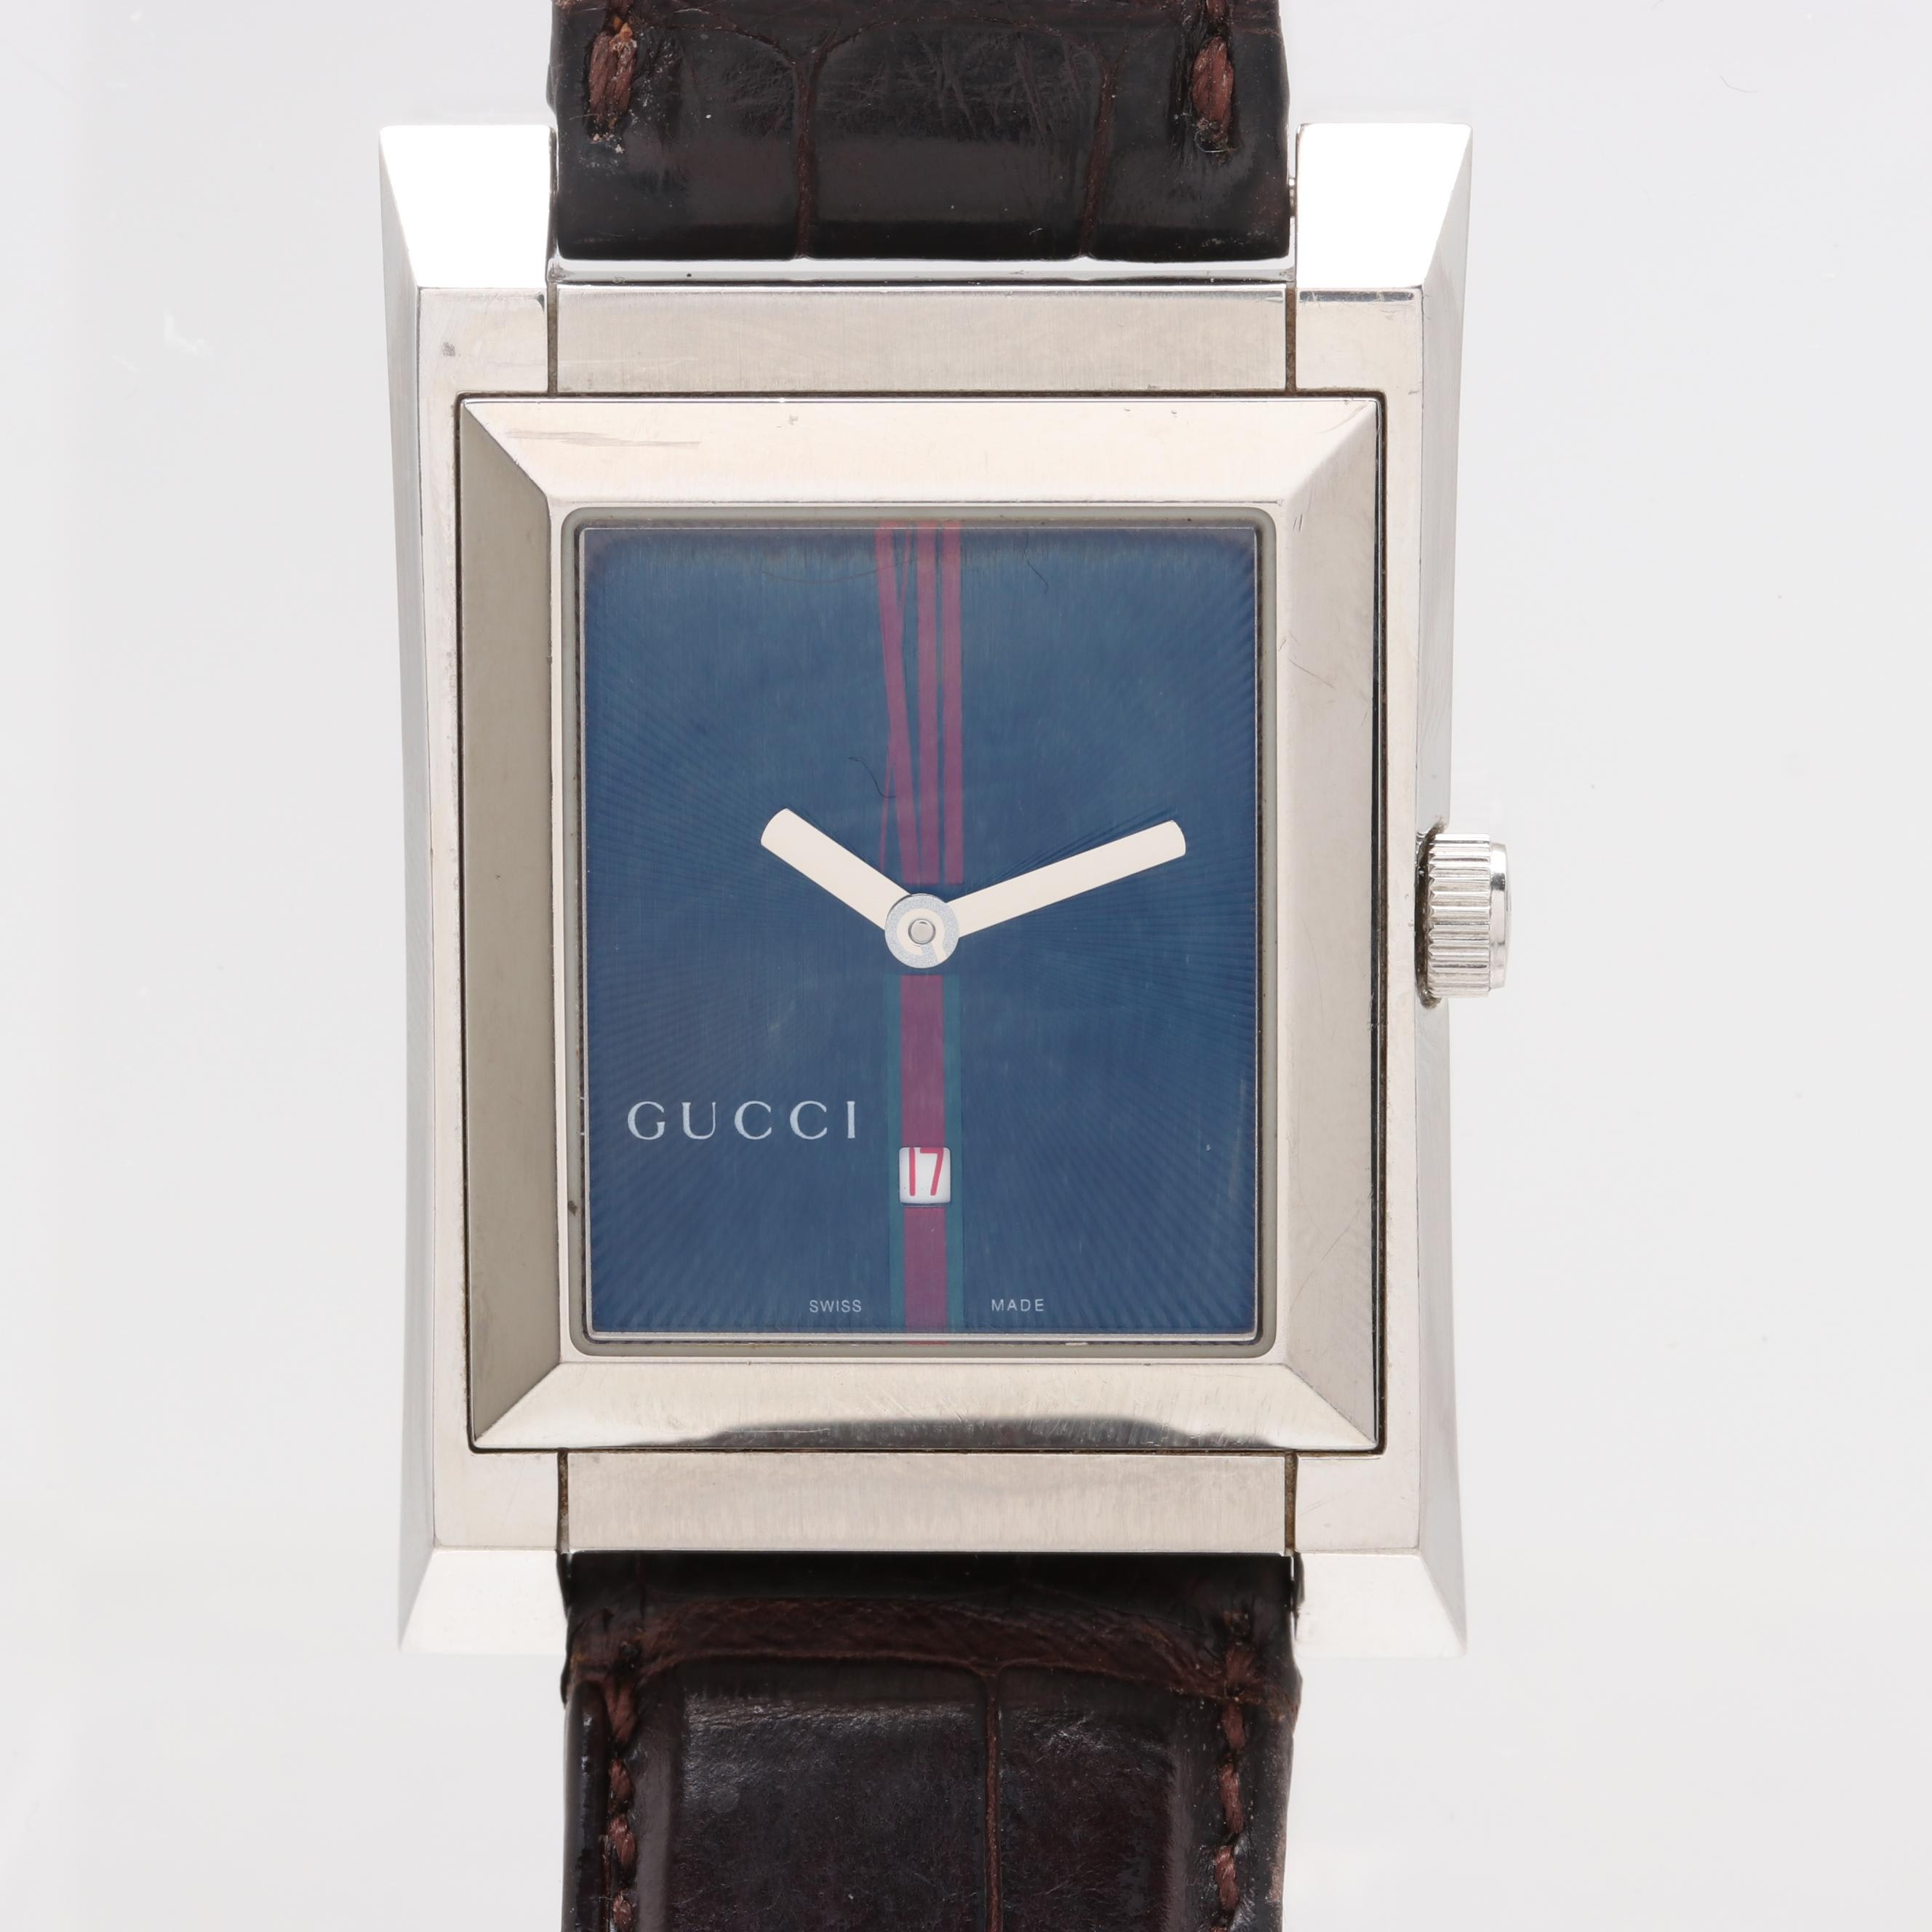 Gucci 111M Swiss Quartz Wristwatch